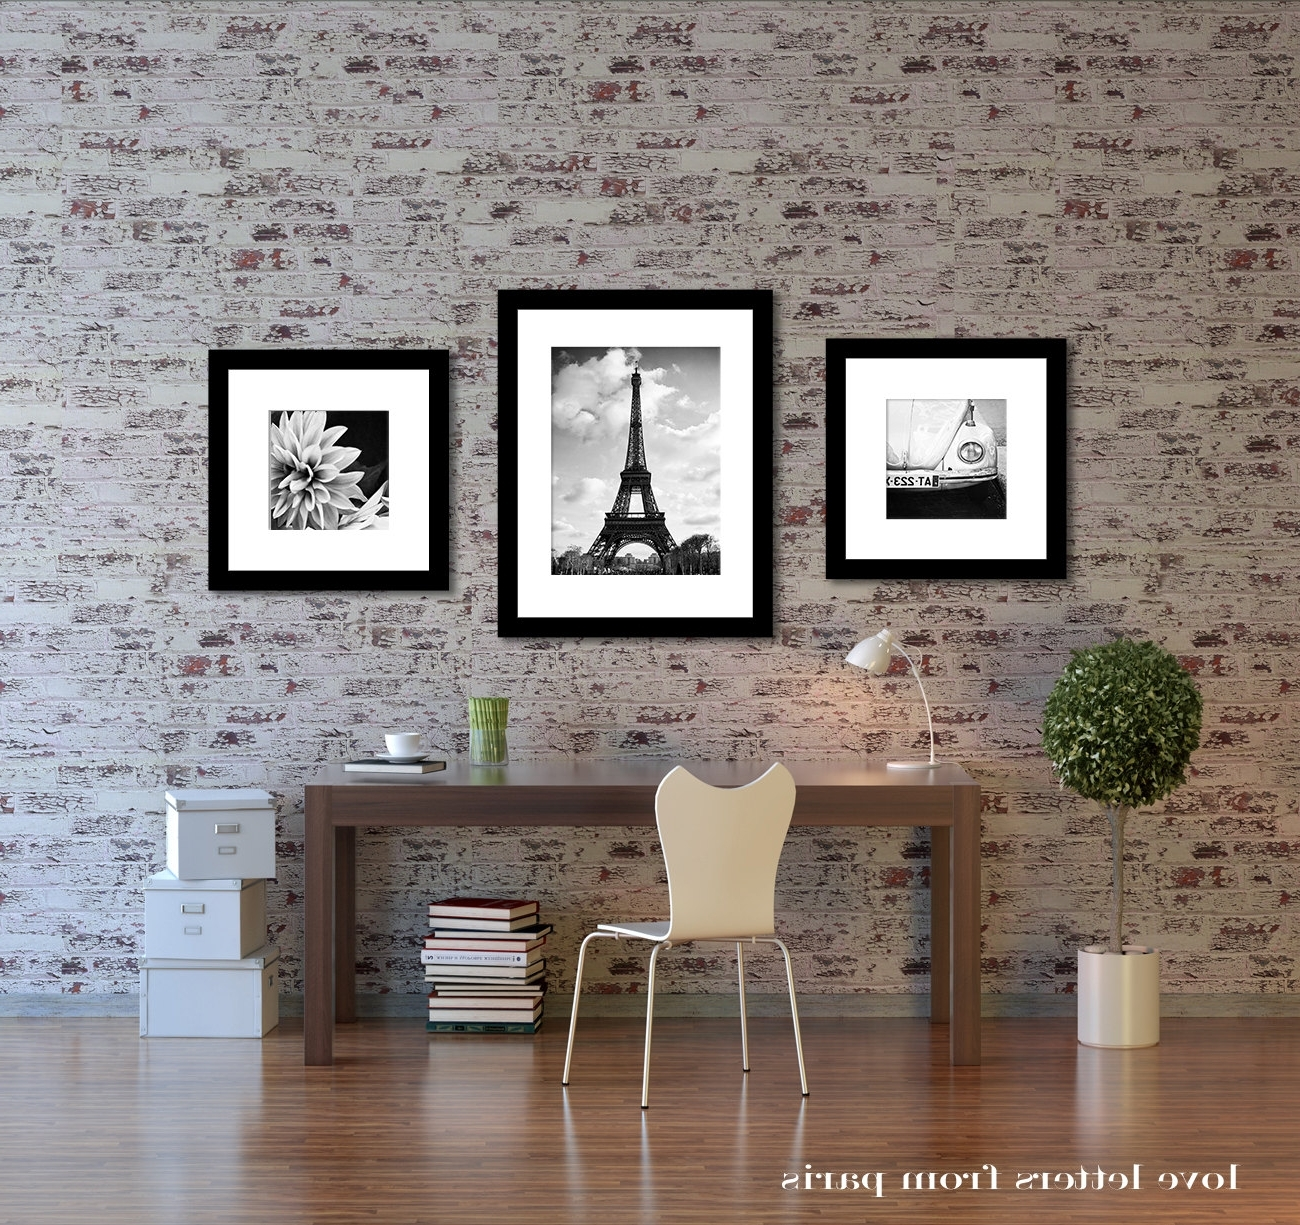 Home Decor Wall Art Contemporary – Home Decor Wall Art Can Intended For Famous Paris Themed Wall Art (Gallery 7 of 15)